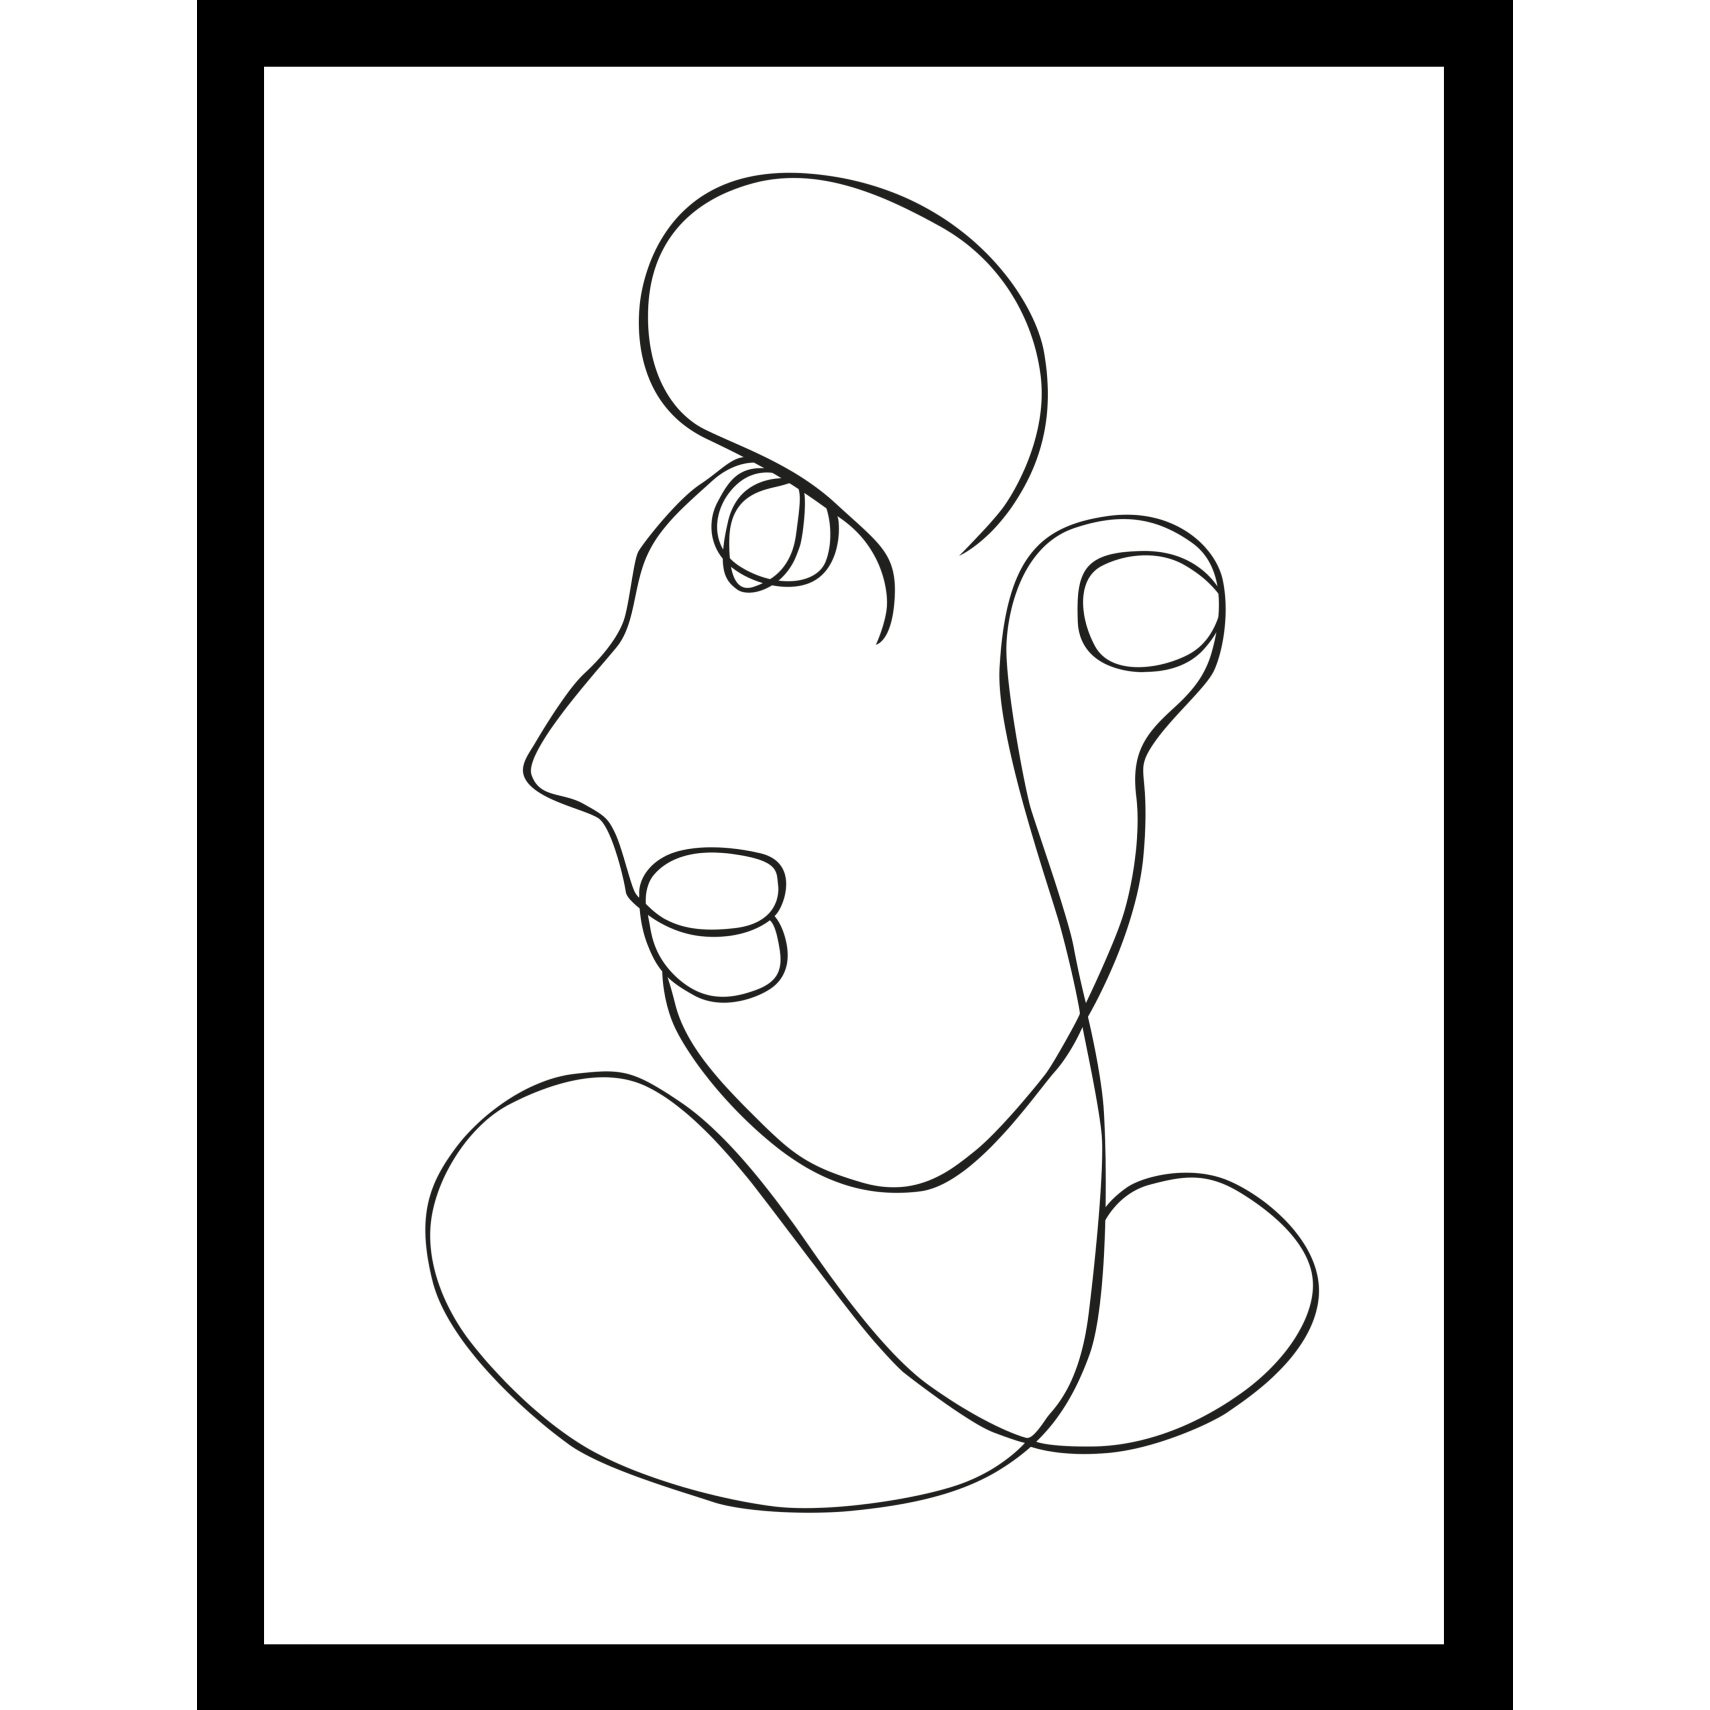 ART GALLERY Plakat 30 x 40 x 1,5 cm - One-line face III og ramme i 15 mm sort fyrretræ